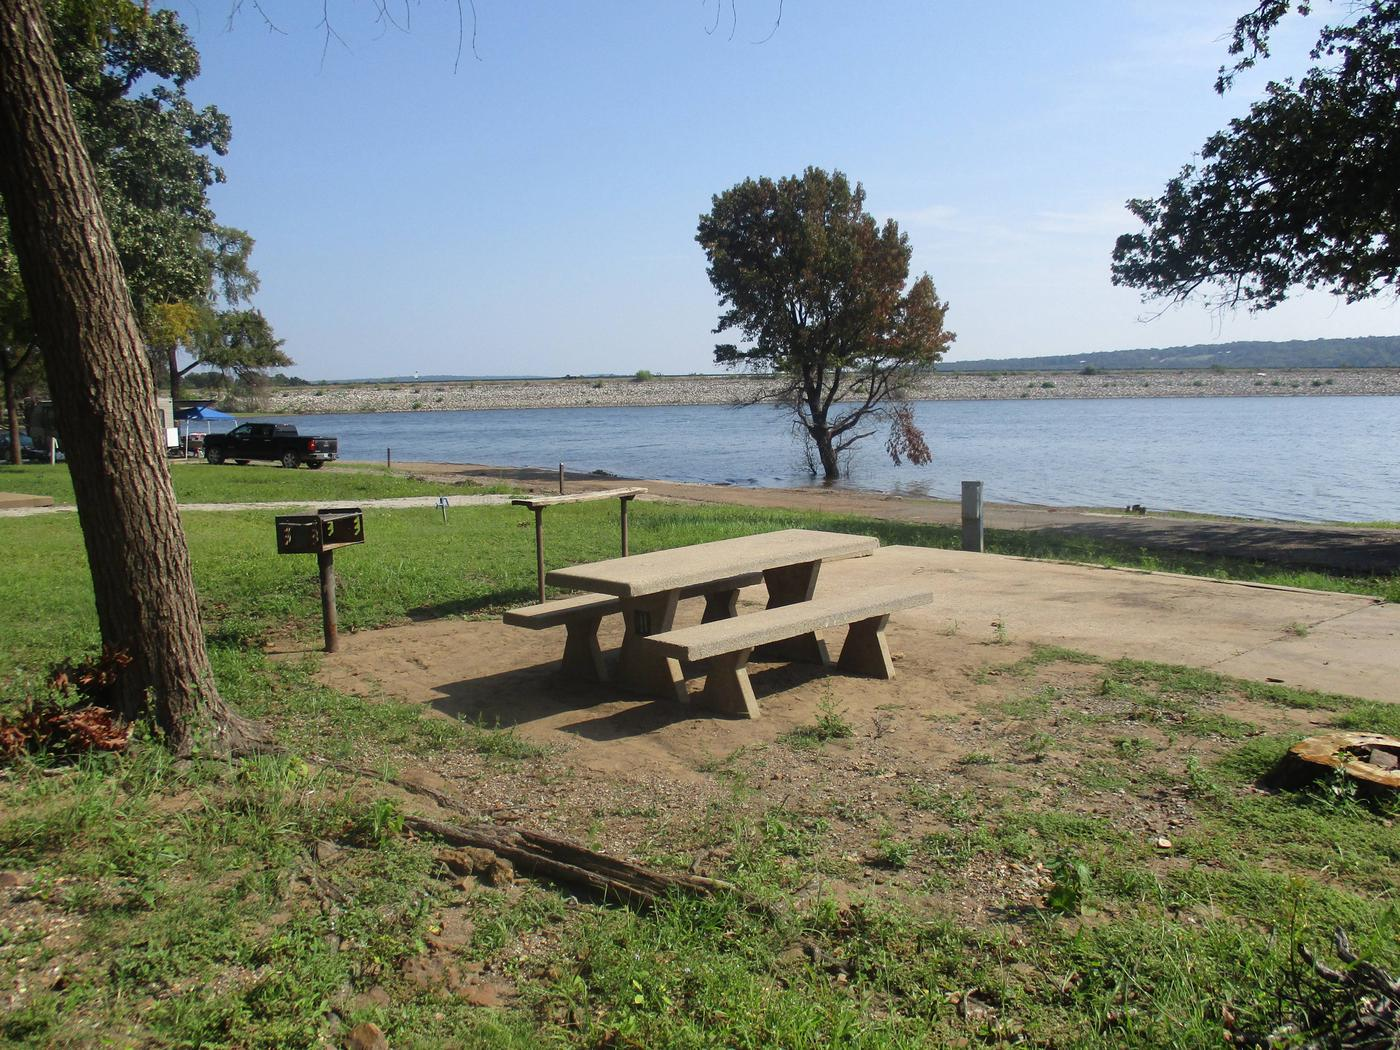 Site 41 - Taylor FerrySite 41 offers a concrete picnic table, utility table, pedestal grill and fire ring.